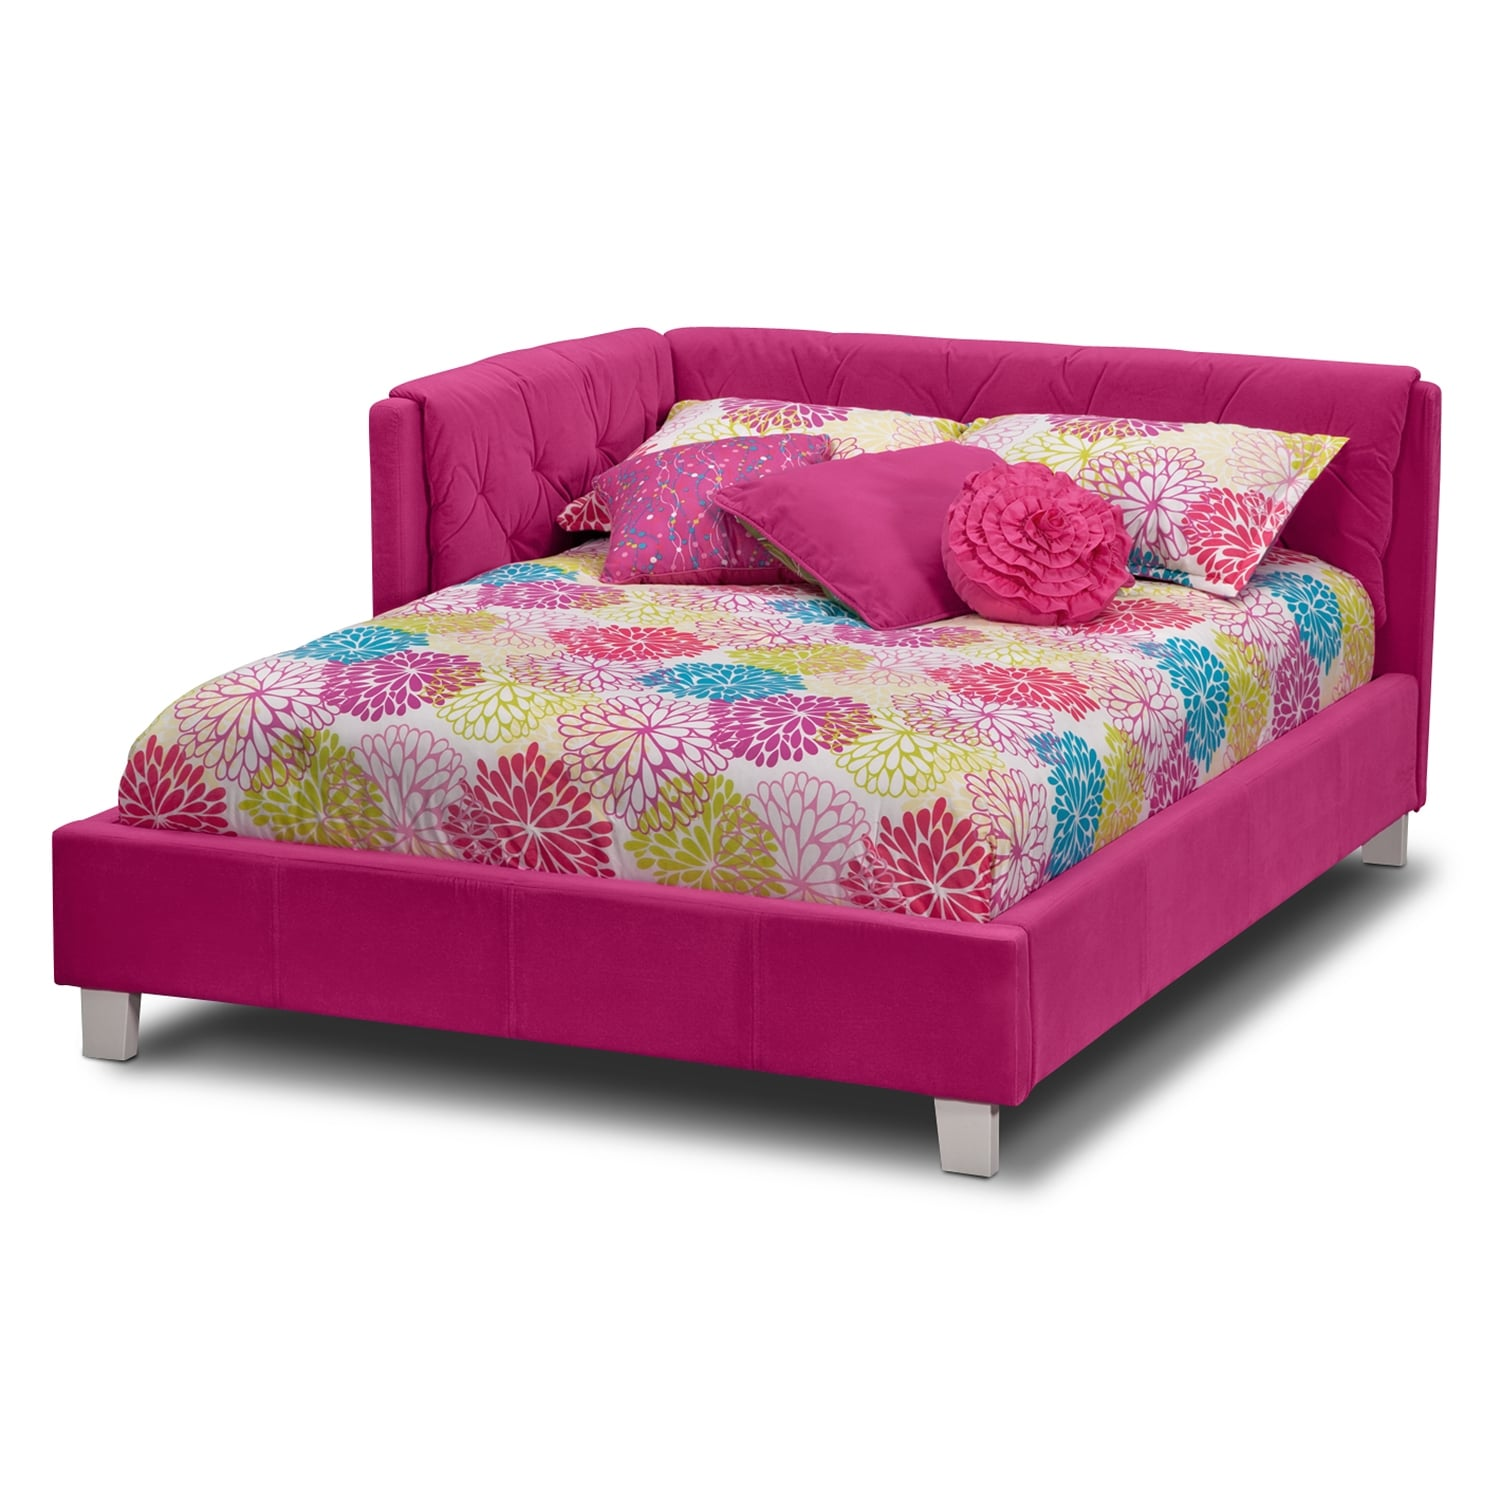 Value City Baby Beds